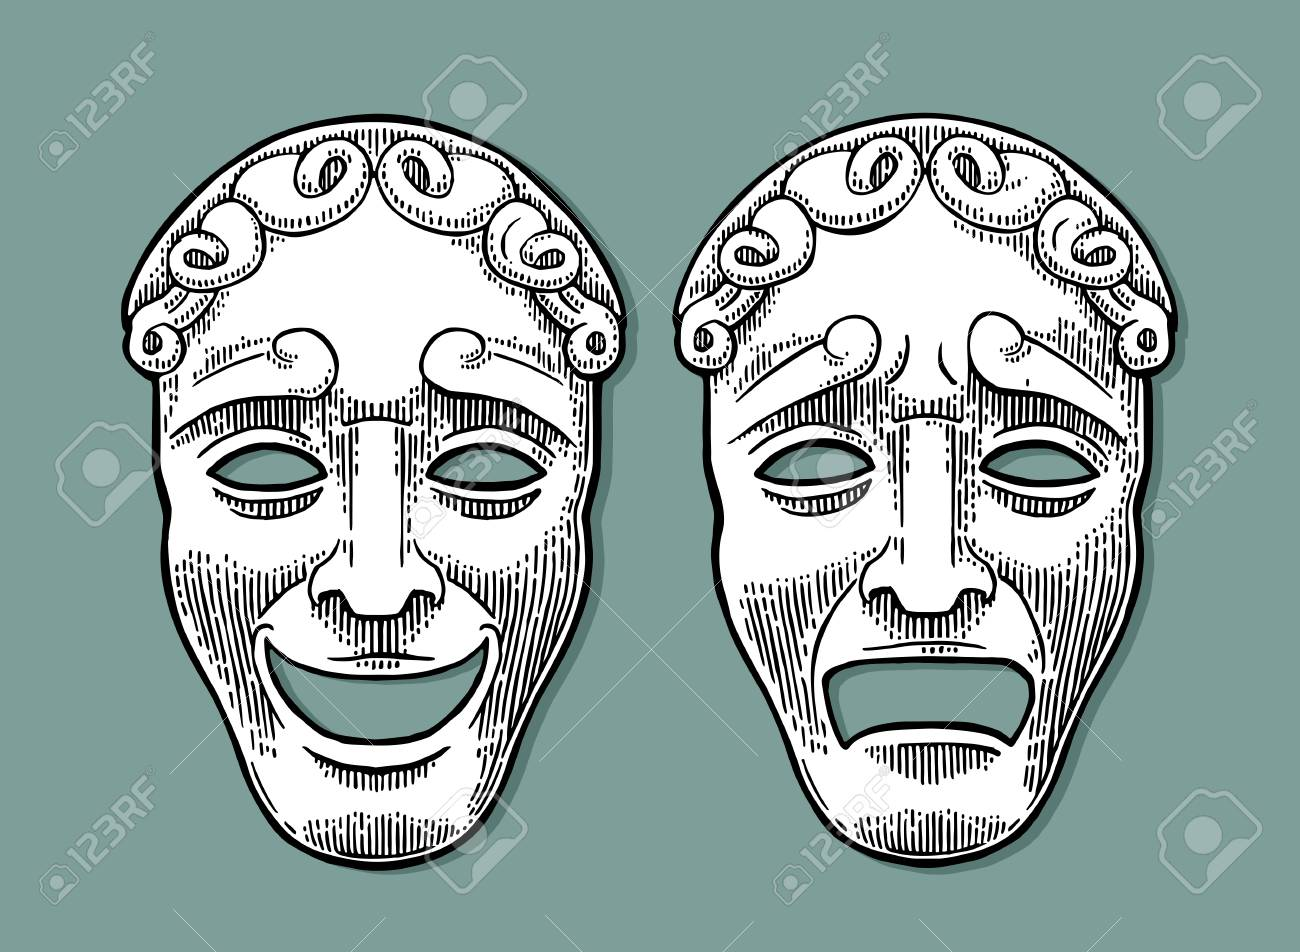 Comedy and tragedy theater masks. Vector engraving vintage black illustration. Isolated on turquoise background with shadow. - 83798940